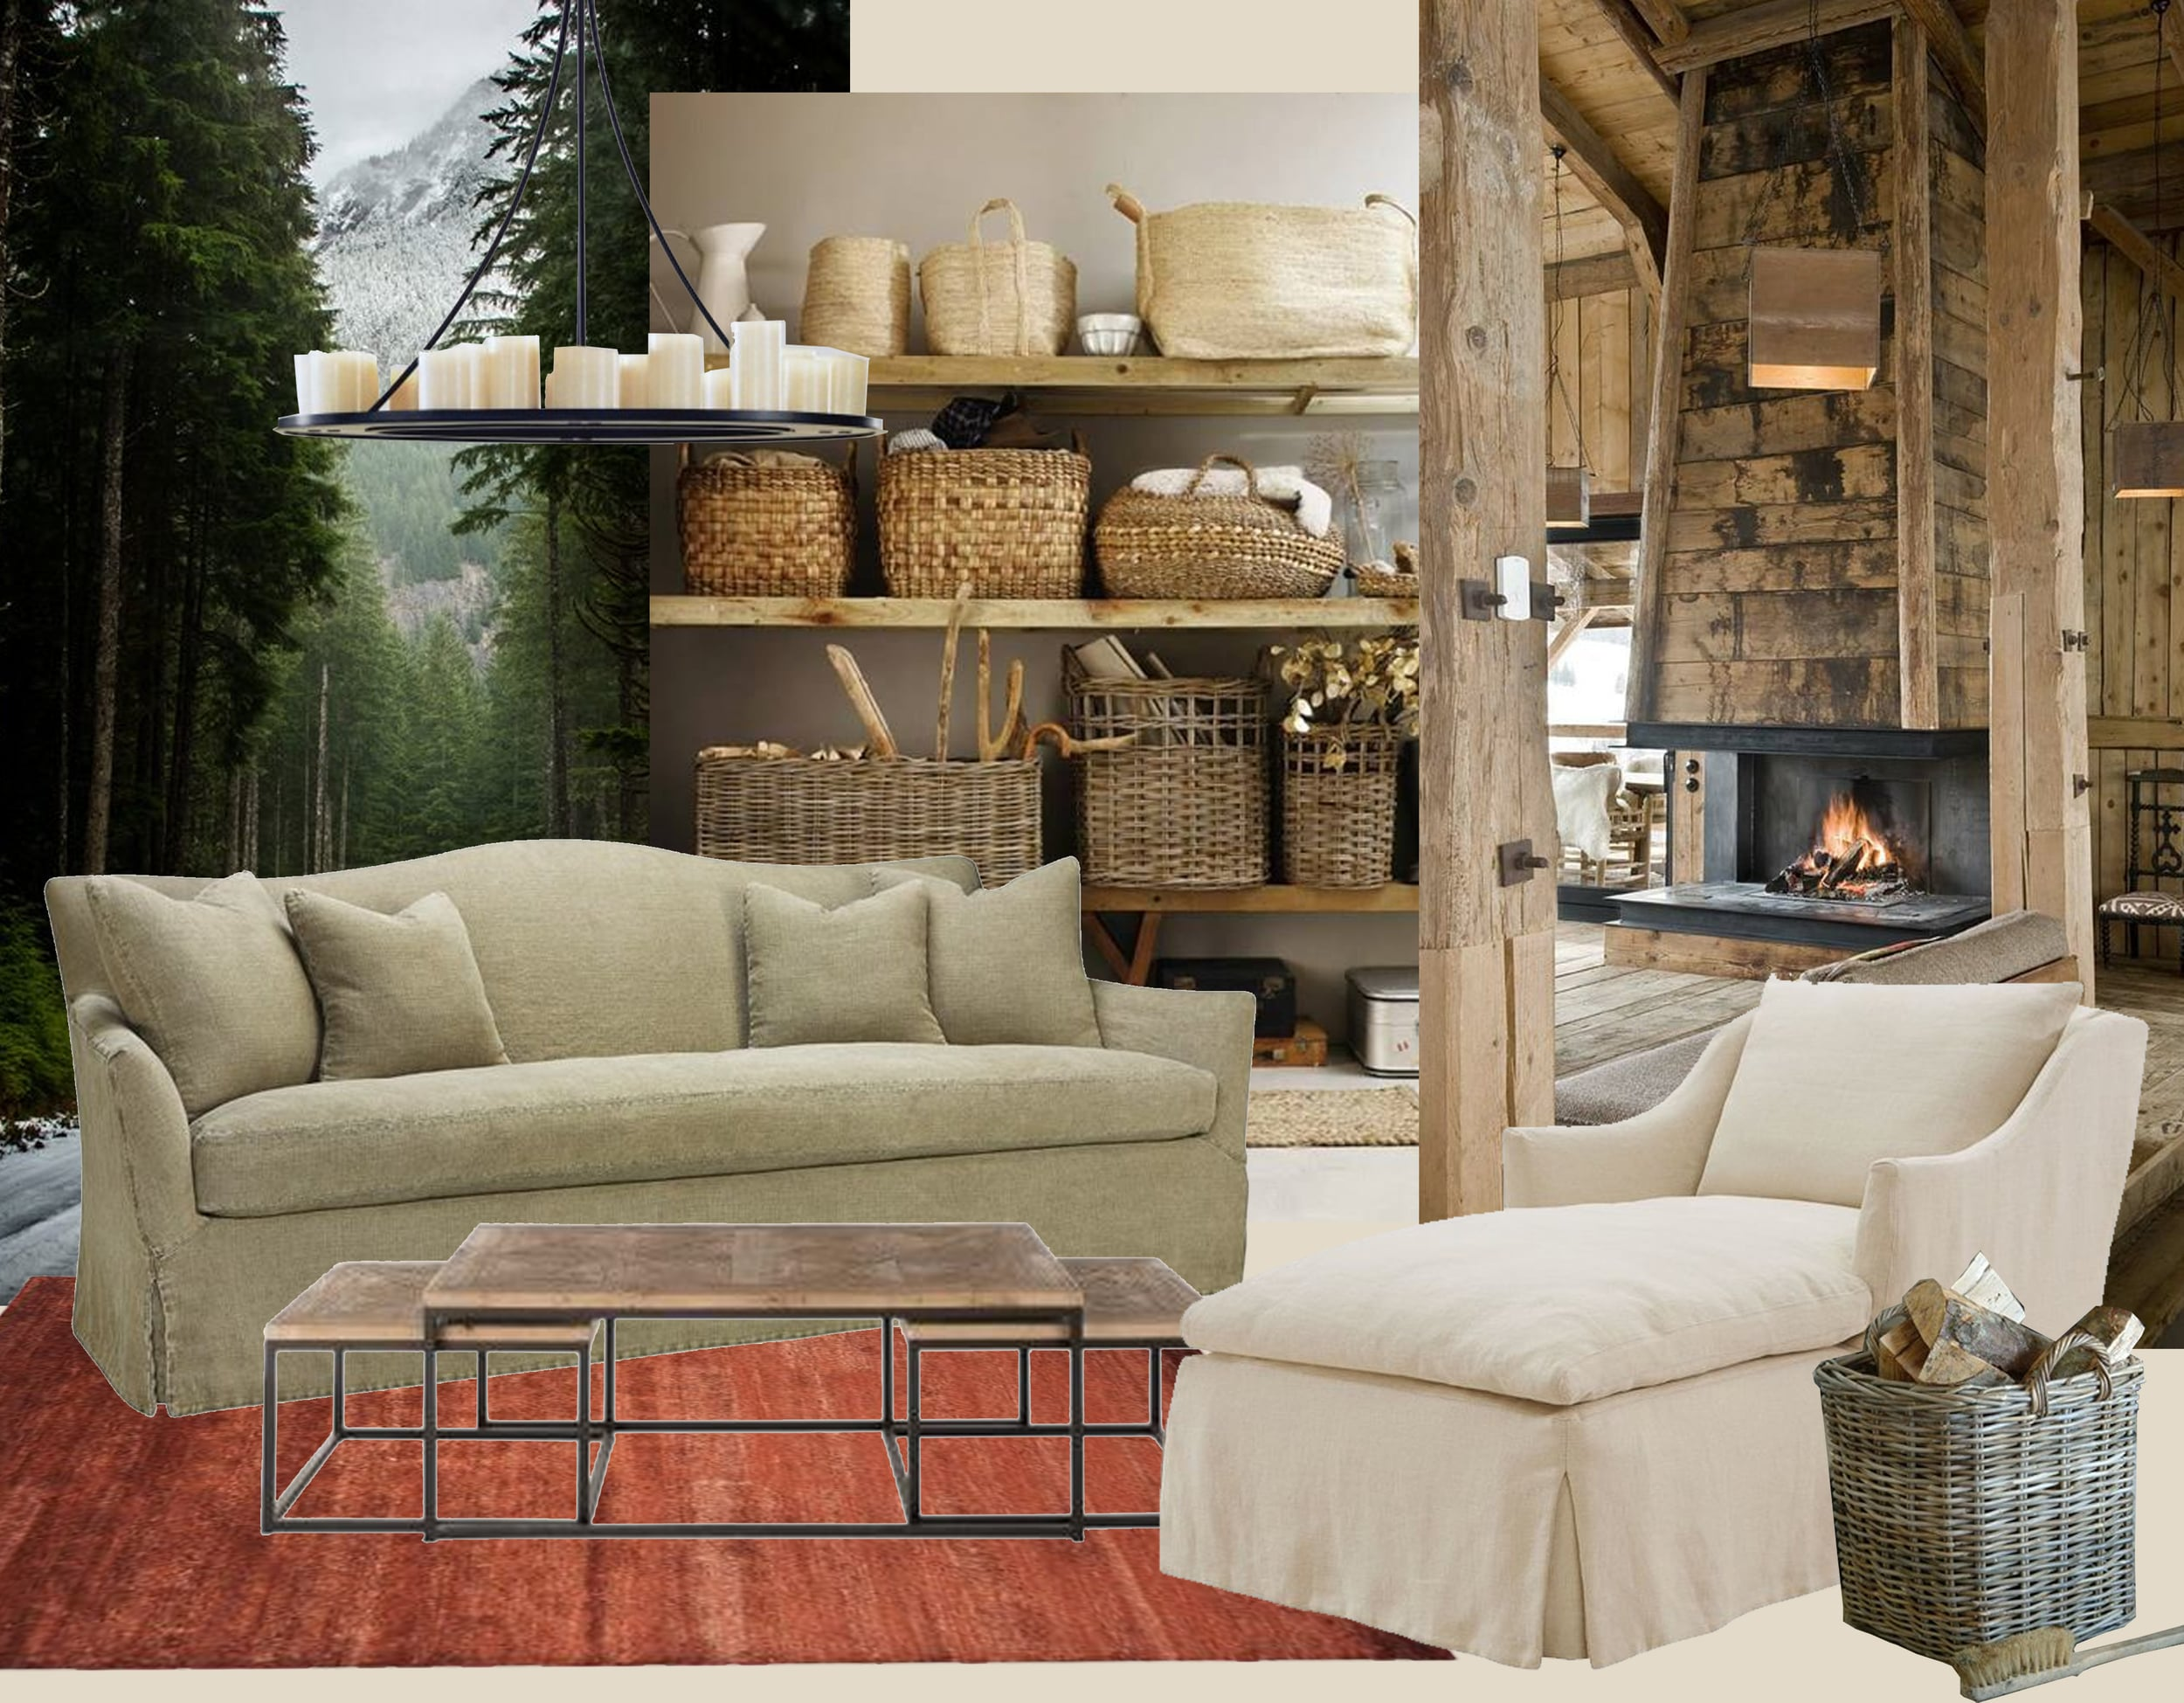 image woods via  Poler  - image wooden baskets  Rough Luxe  - open fireplace via  Pinterest  - sofa and armchair  Marie's Corner  - coffee table  Blanc d'Ivoire  - basket  Garden Trading  - hanging lamp  Kevin Reilly